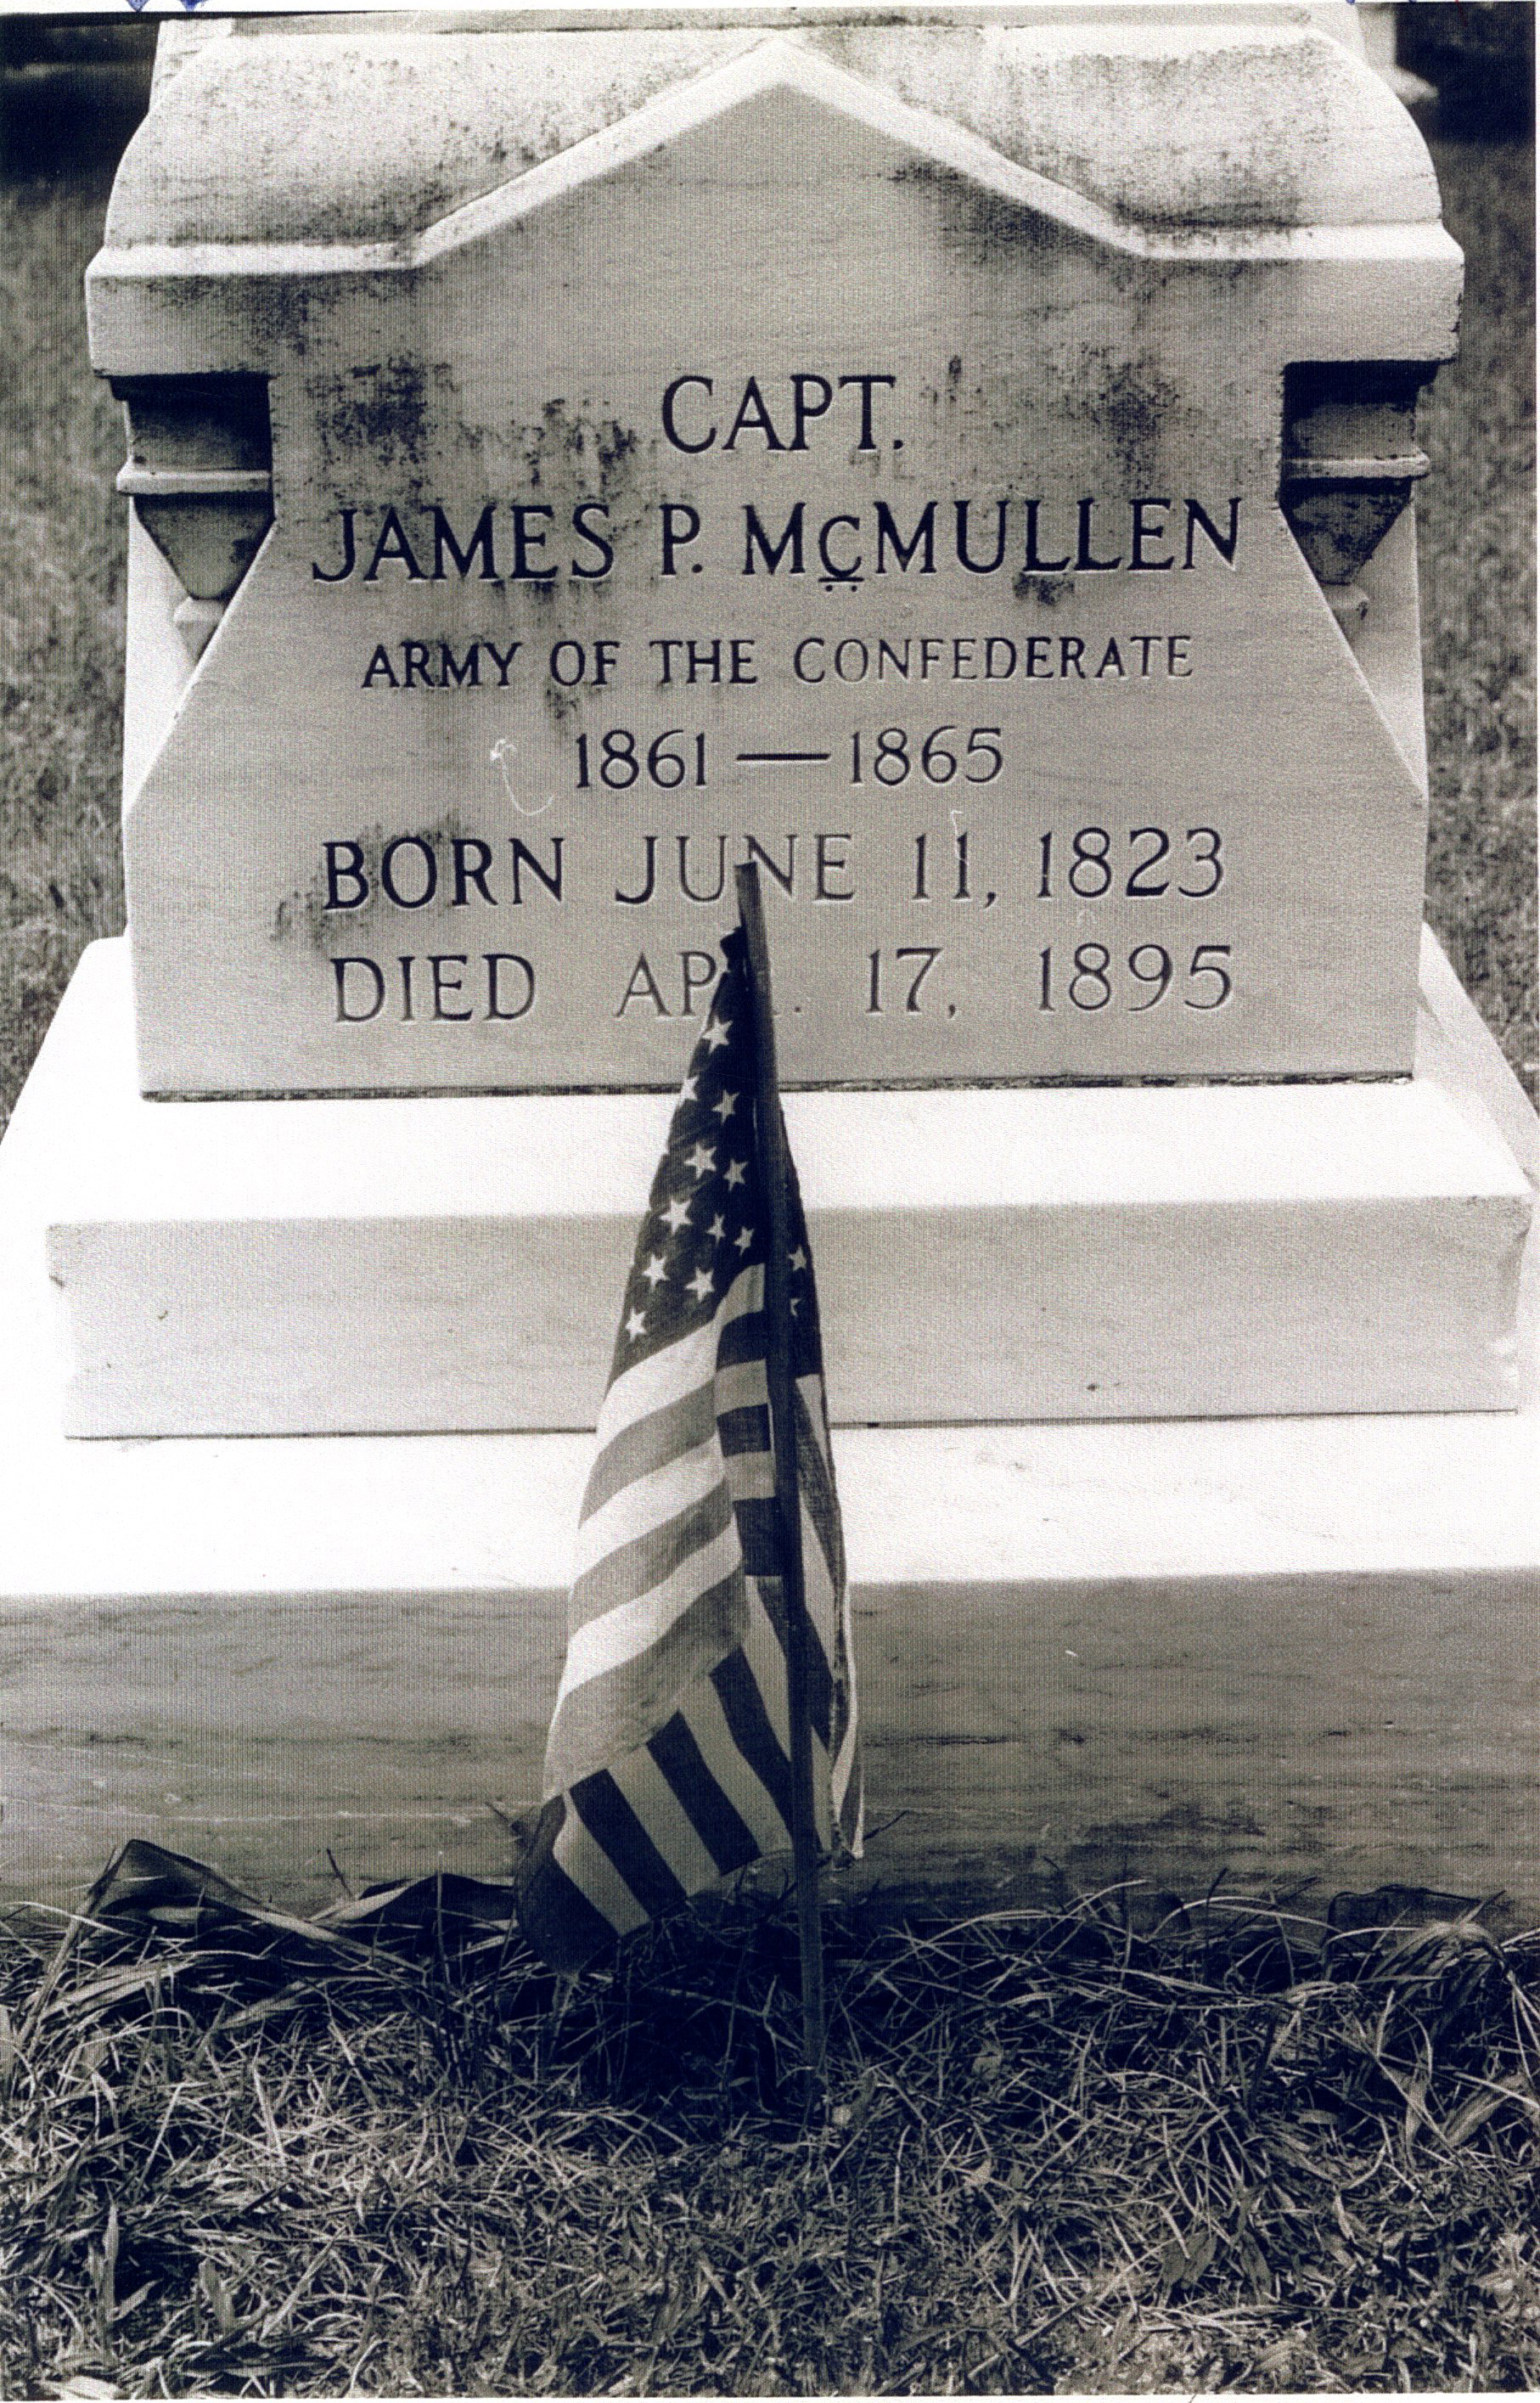 Tombstone of James P. McMullen, McMullen Cemetery, Clearwater, Florida, undated